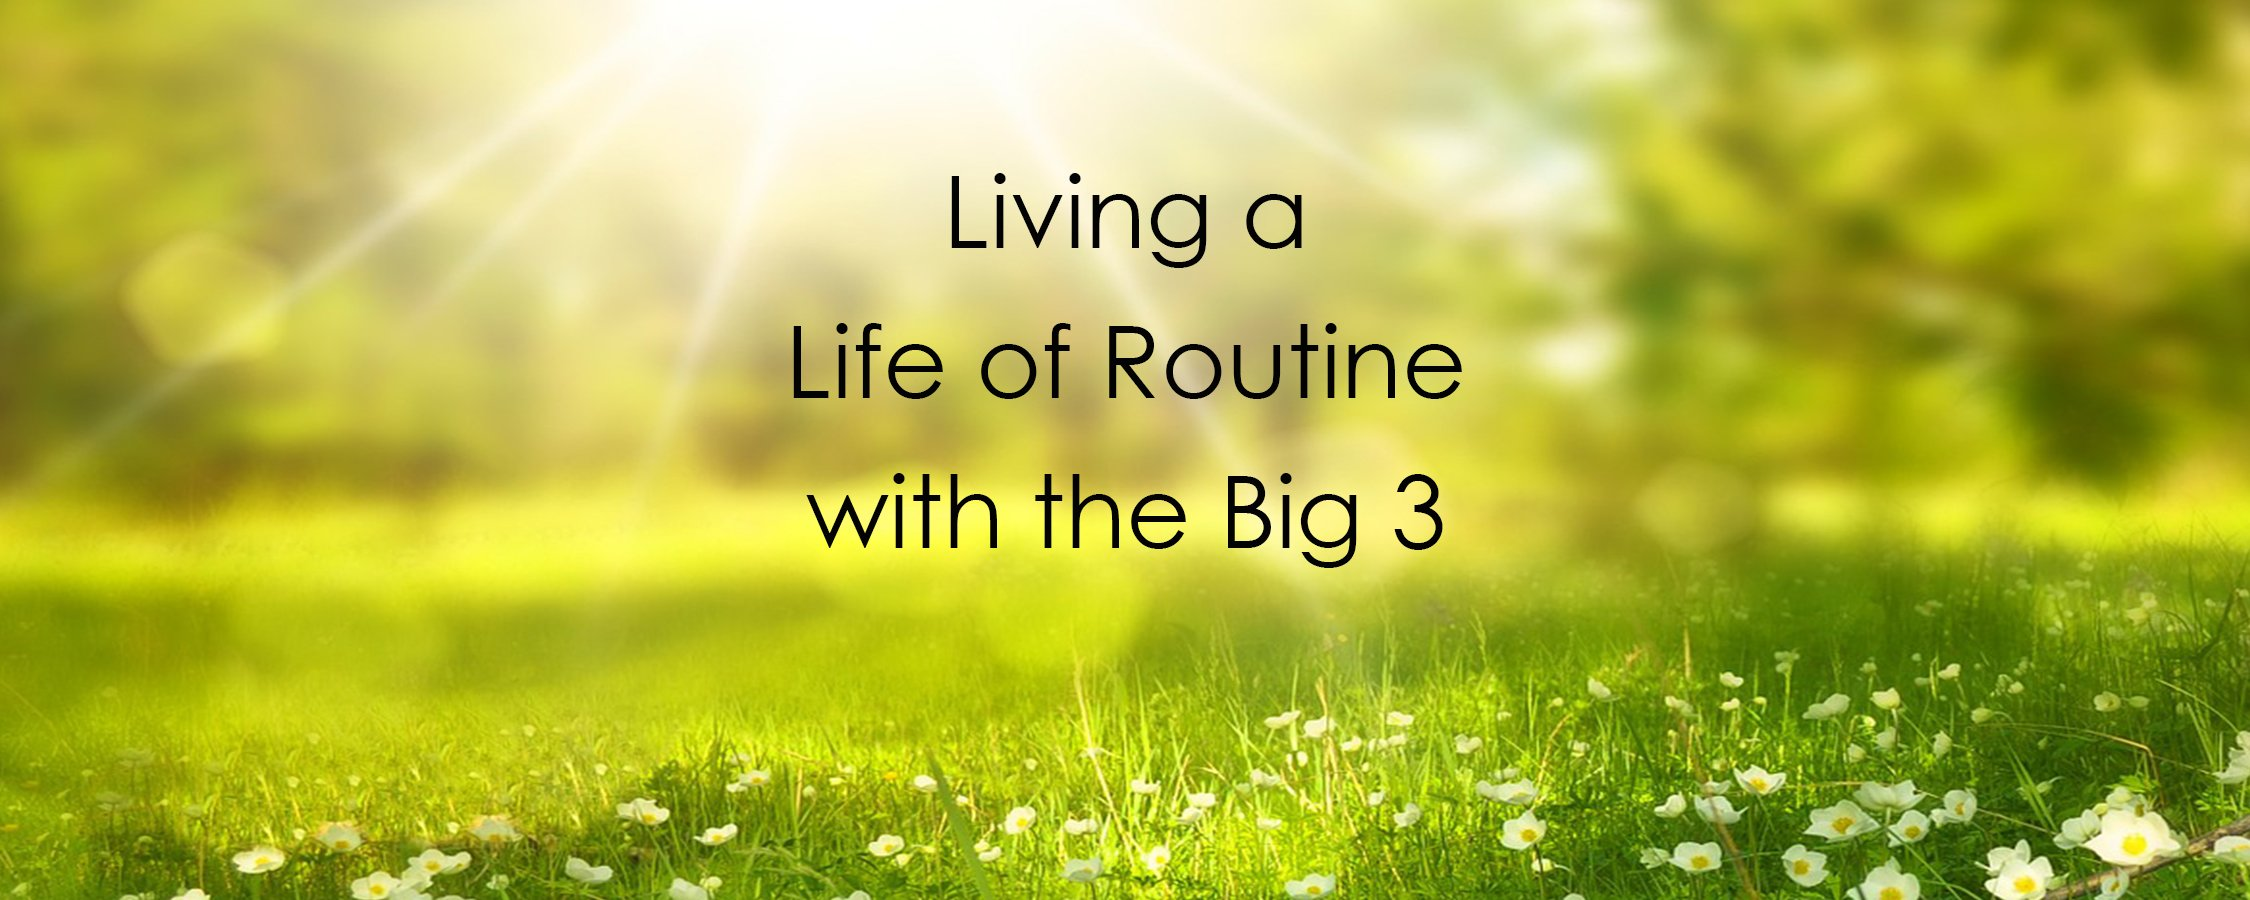 Living a Life of Routine with the Big 3